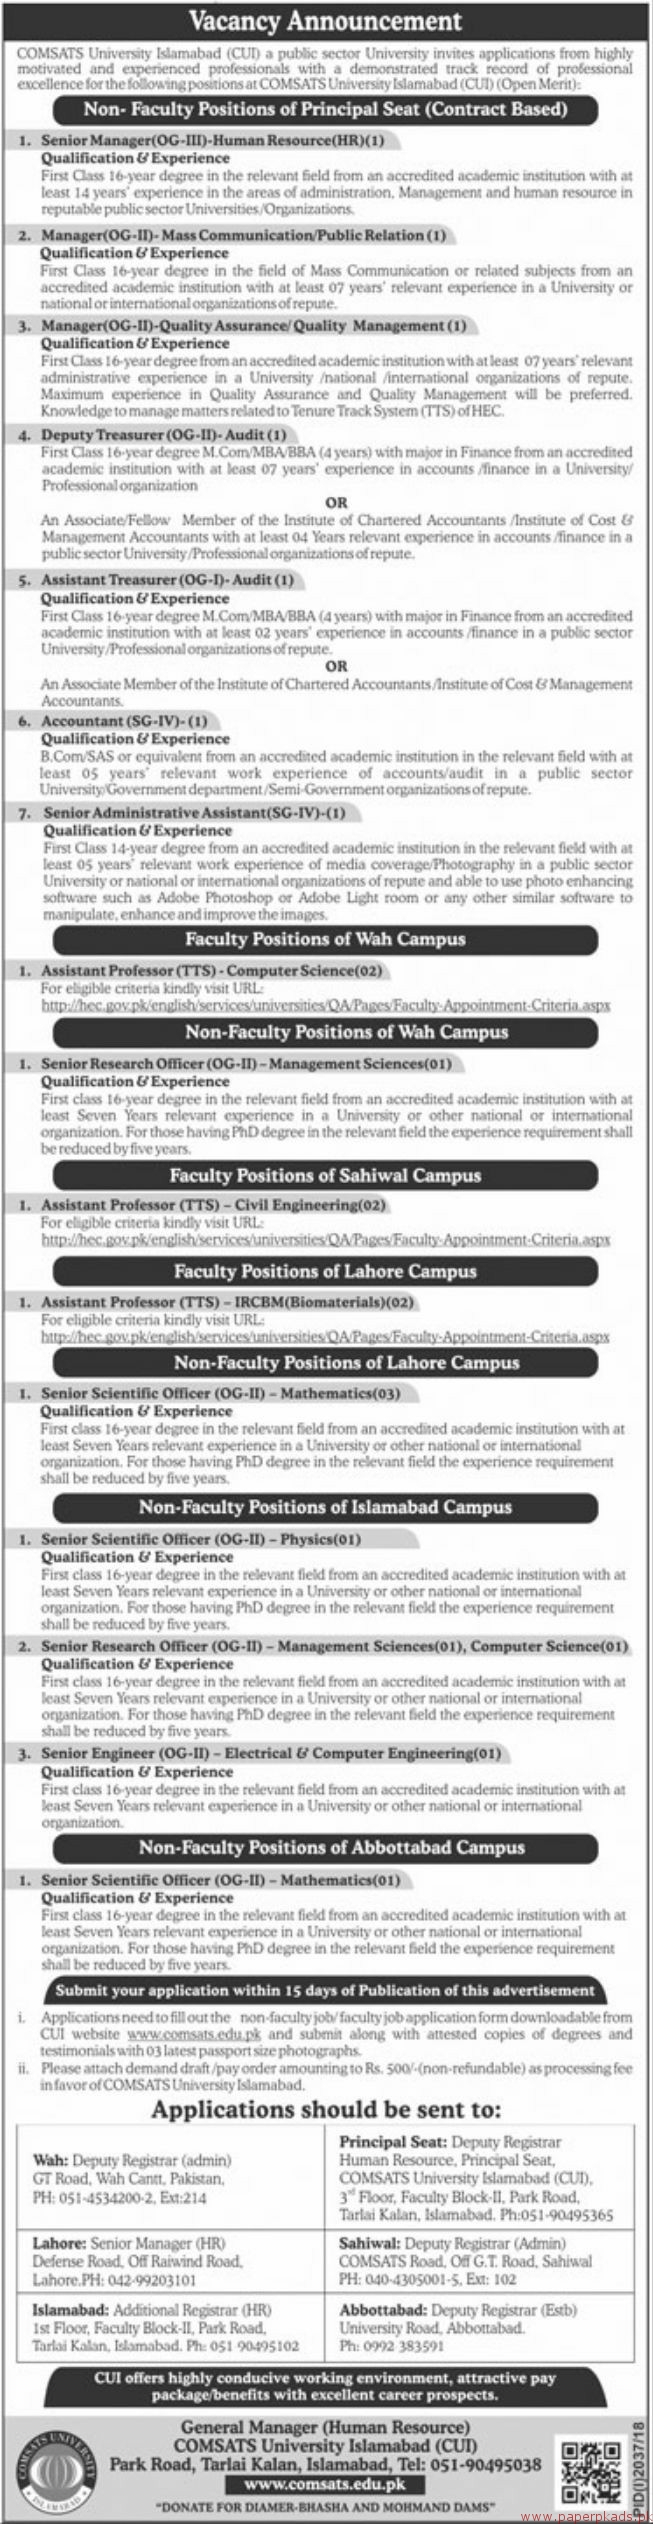 COMSATS University Islamabad CUI Jobs 2018 Latest